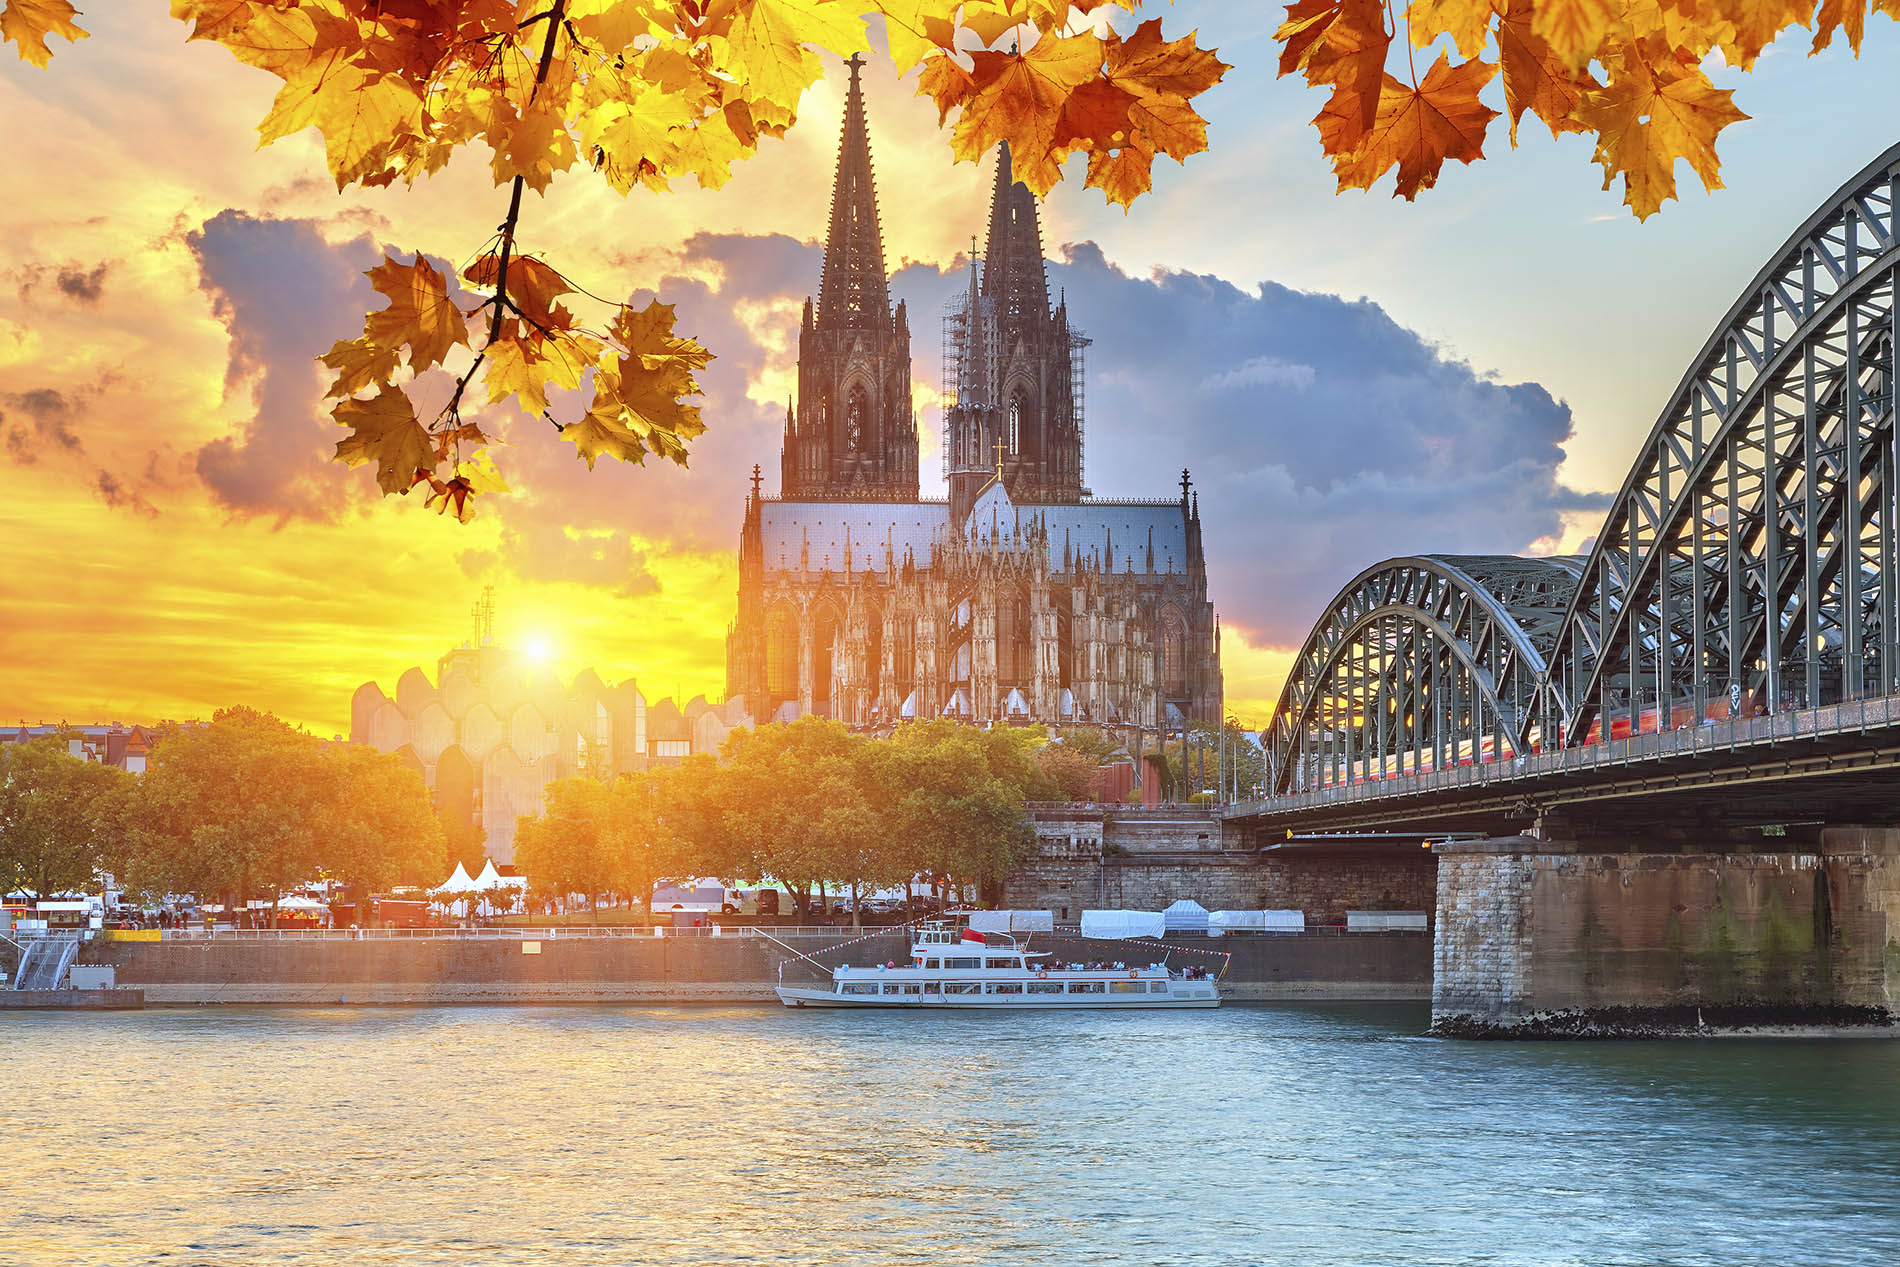 Sunset over the city of Cologne, Germany